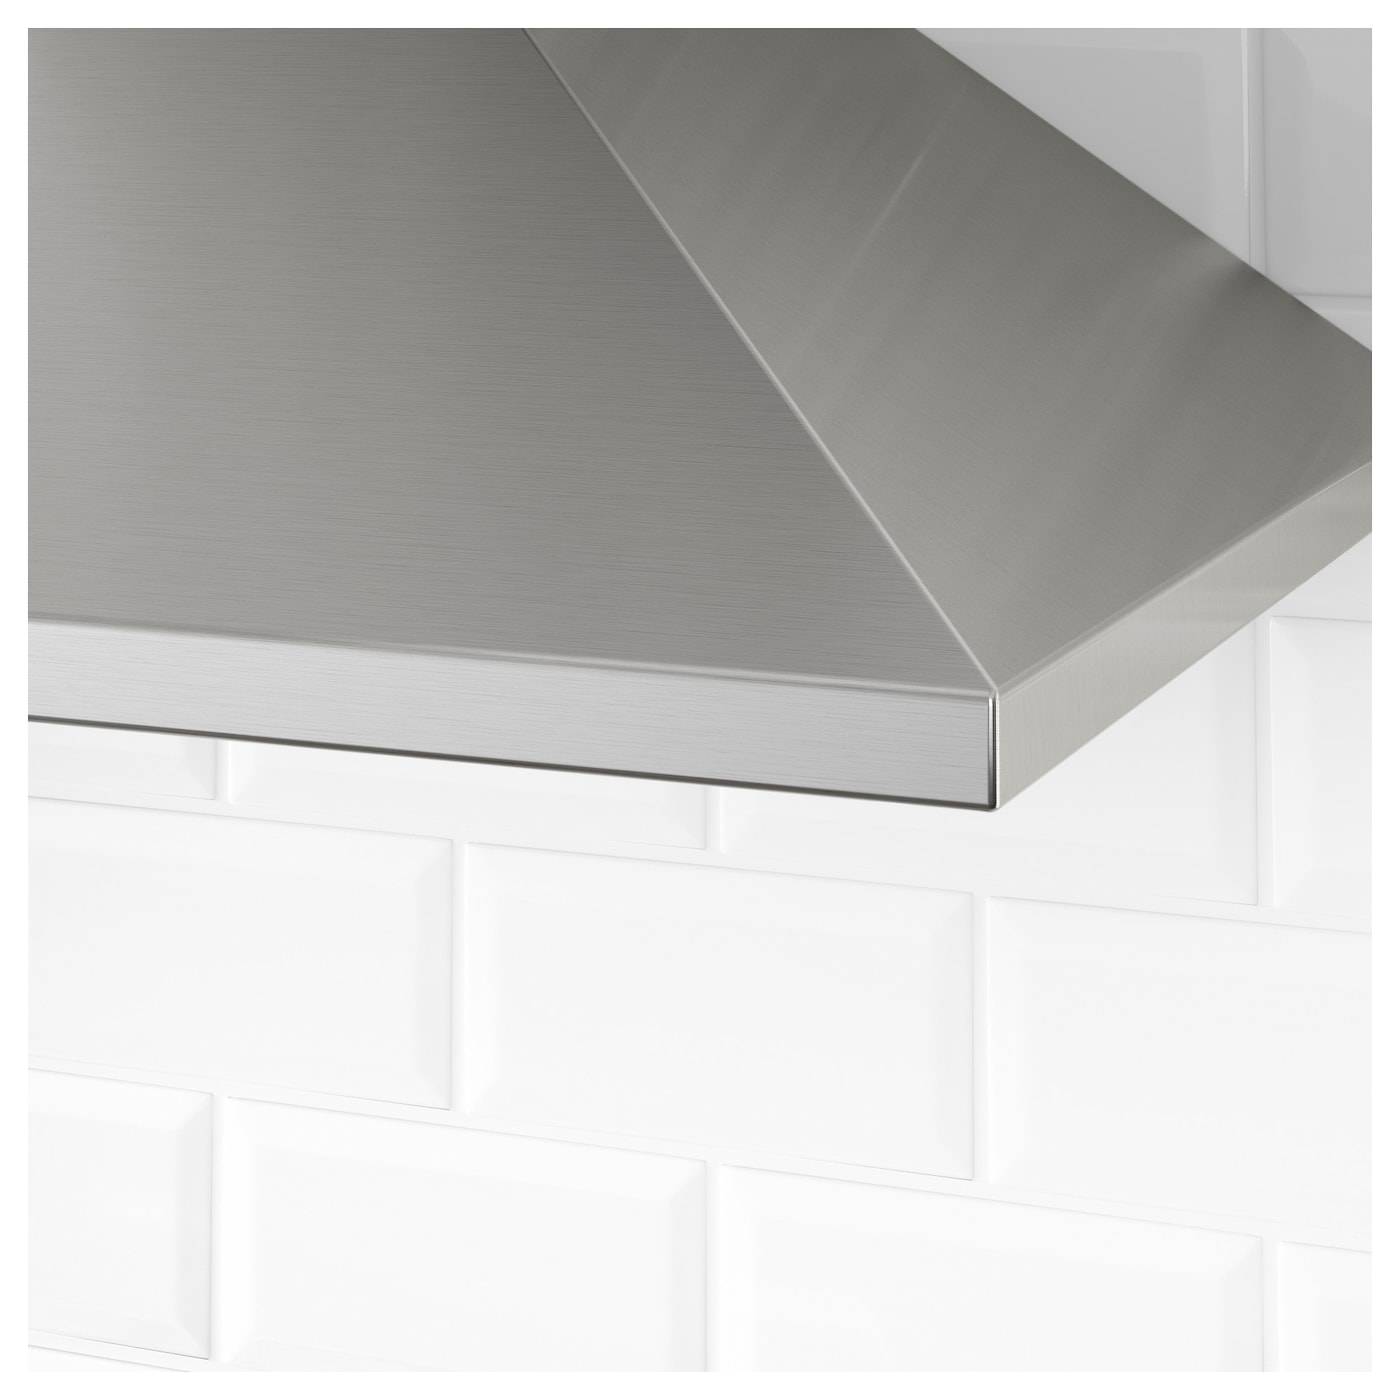 IKEA UPPDRAG wall mounted extractor hood Control panel placed at front for easy access and use.